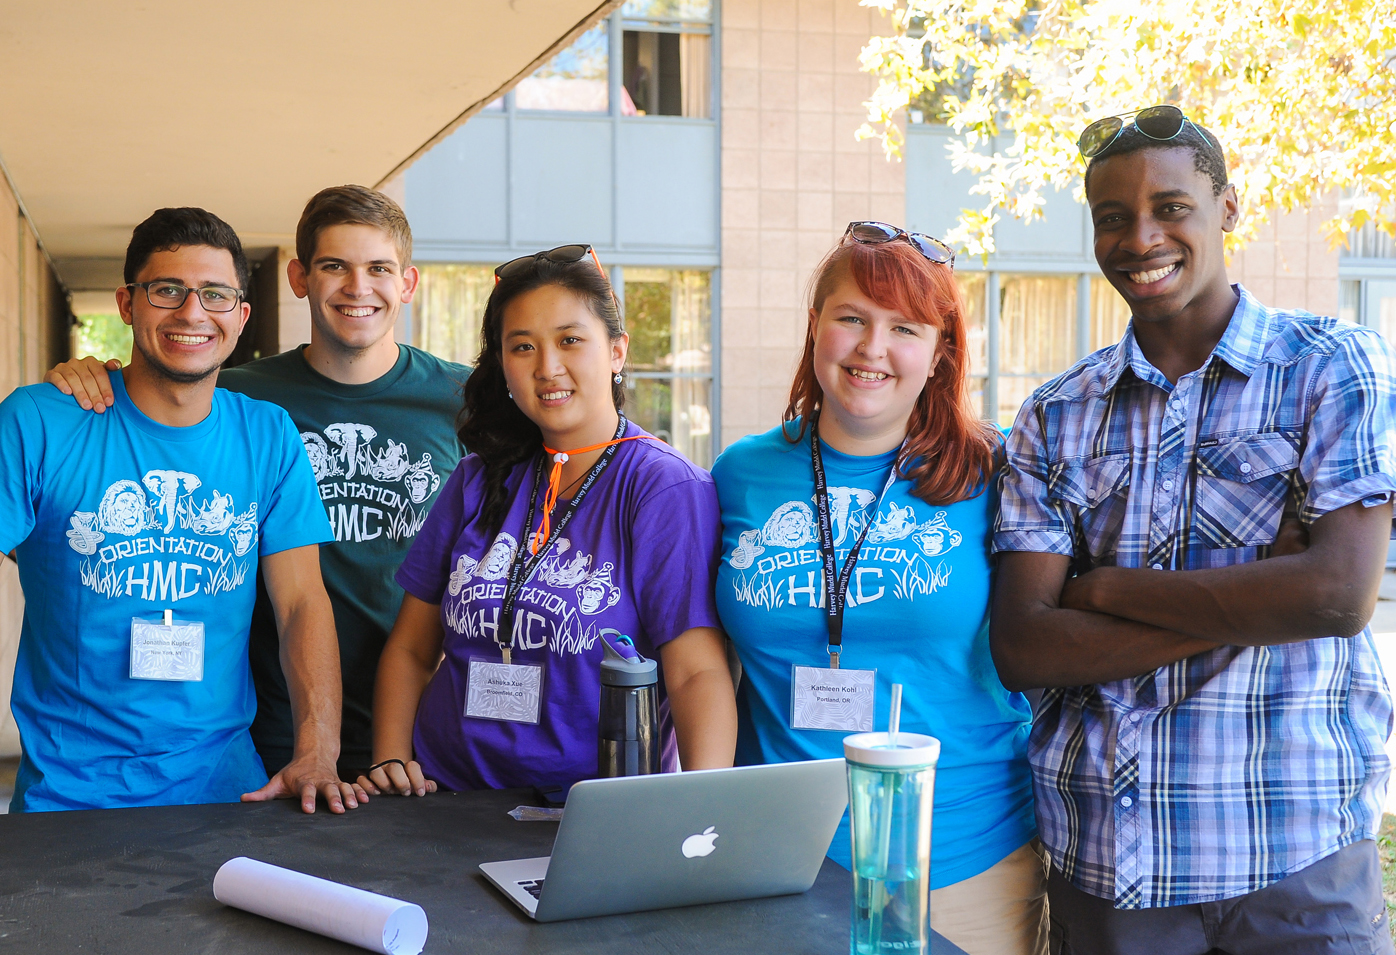 Photograph of five Harvey Mudd College Orientation leaders